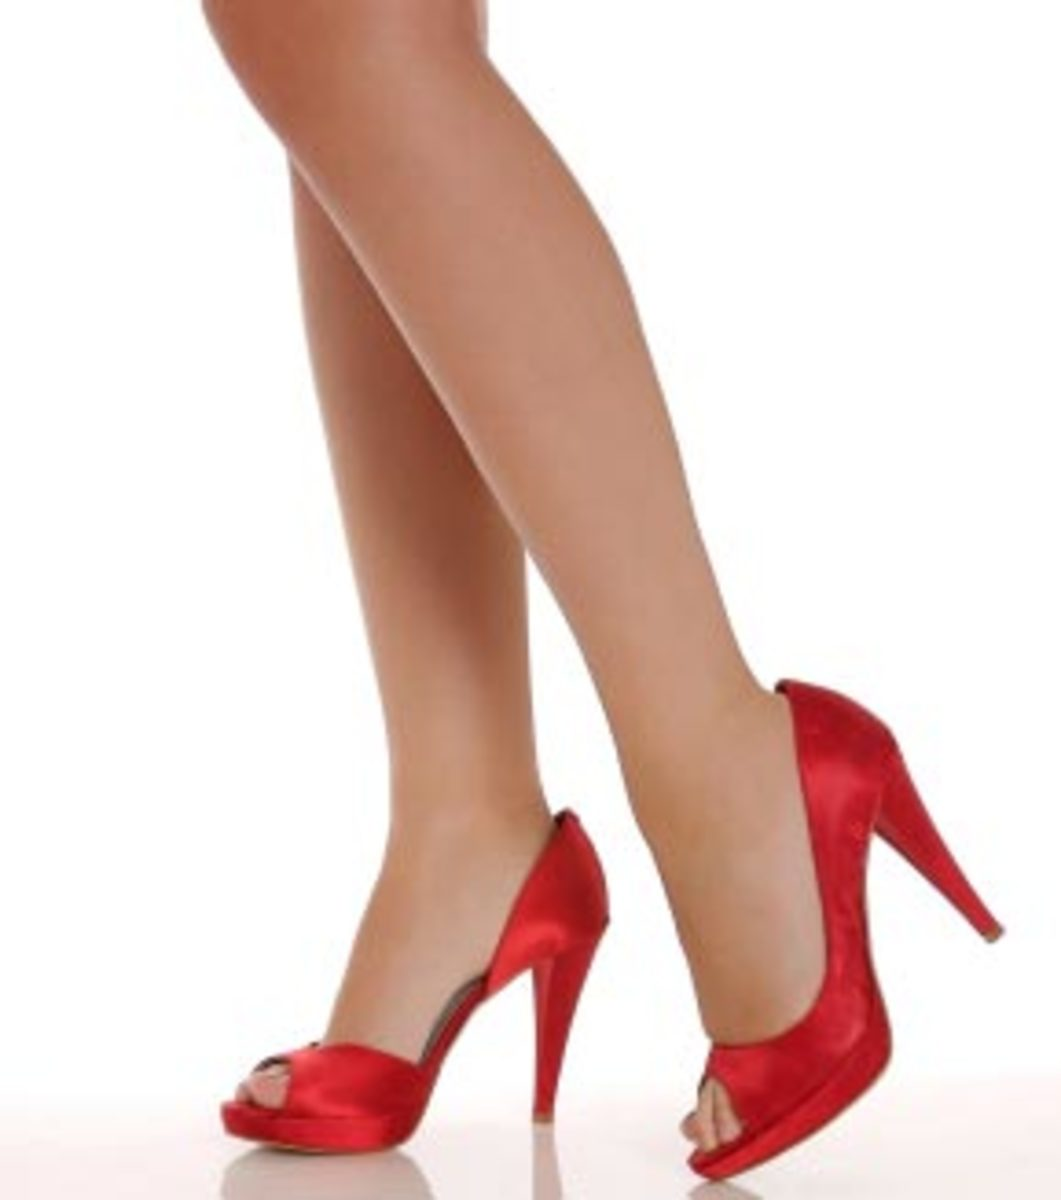 High heels make you stylish, fashionable, sexy, hot - you name it!